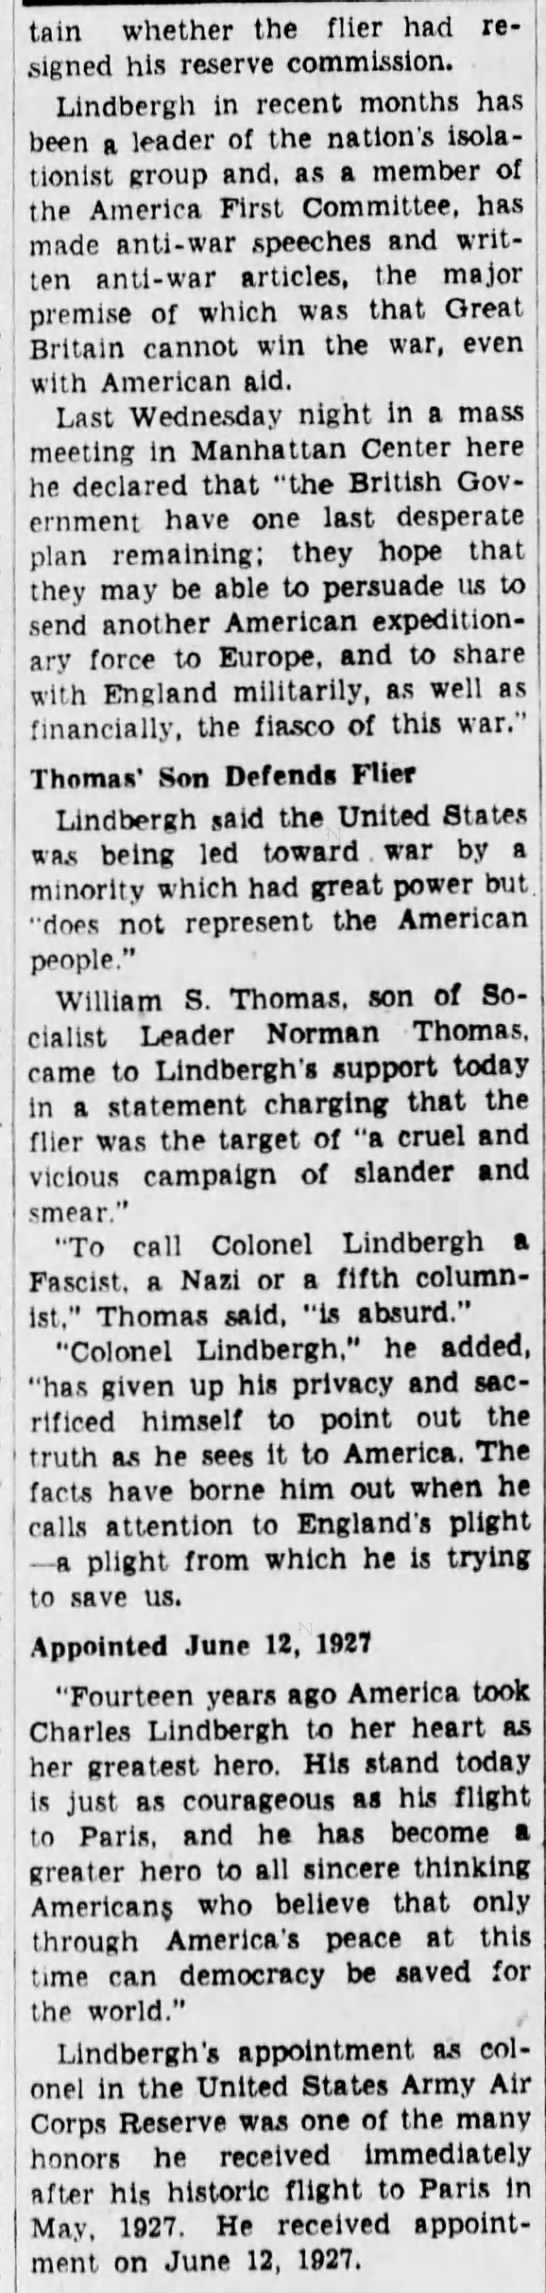 lind4 Old Print Article: Charles A. Lindbergh Angrily Resigns (1941)